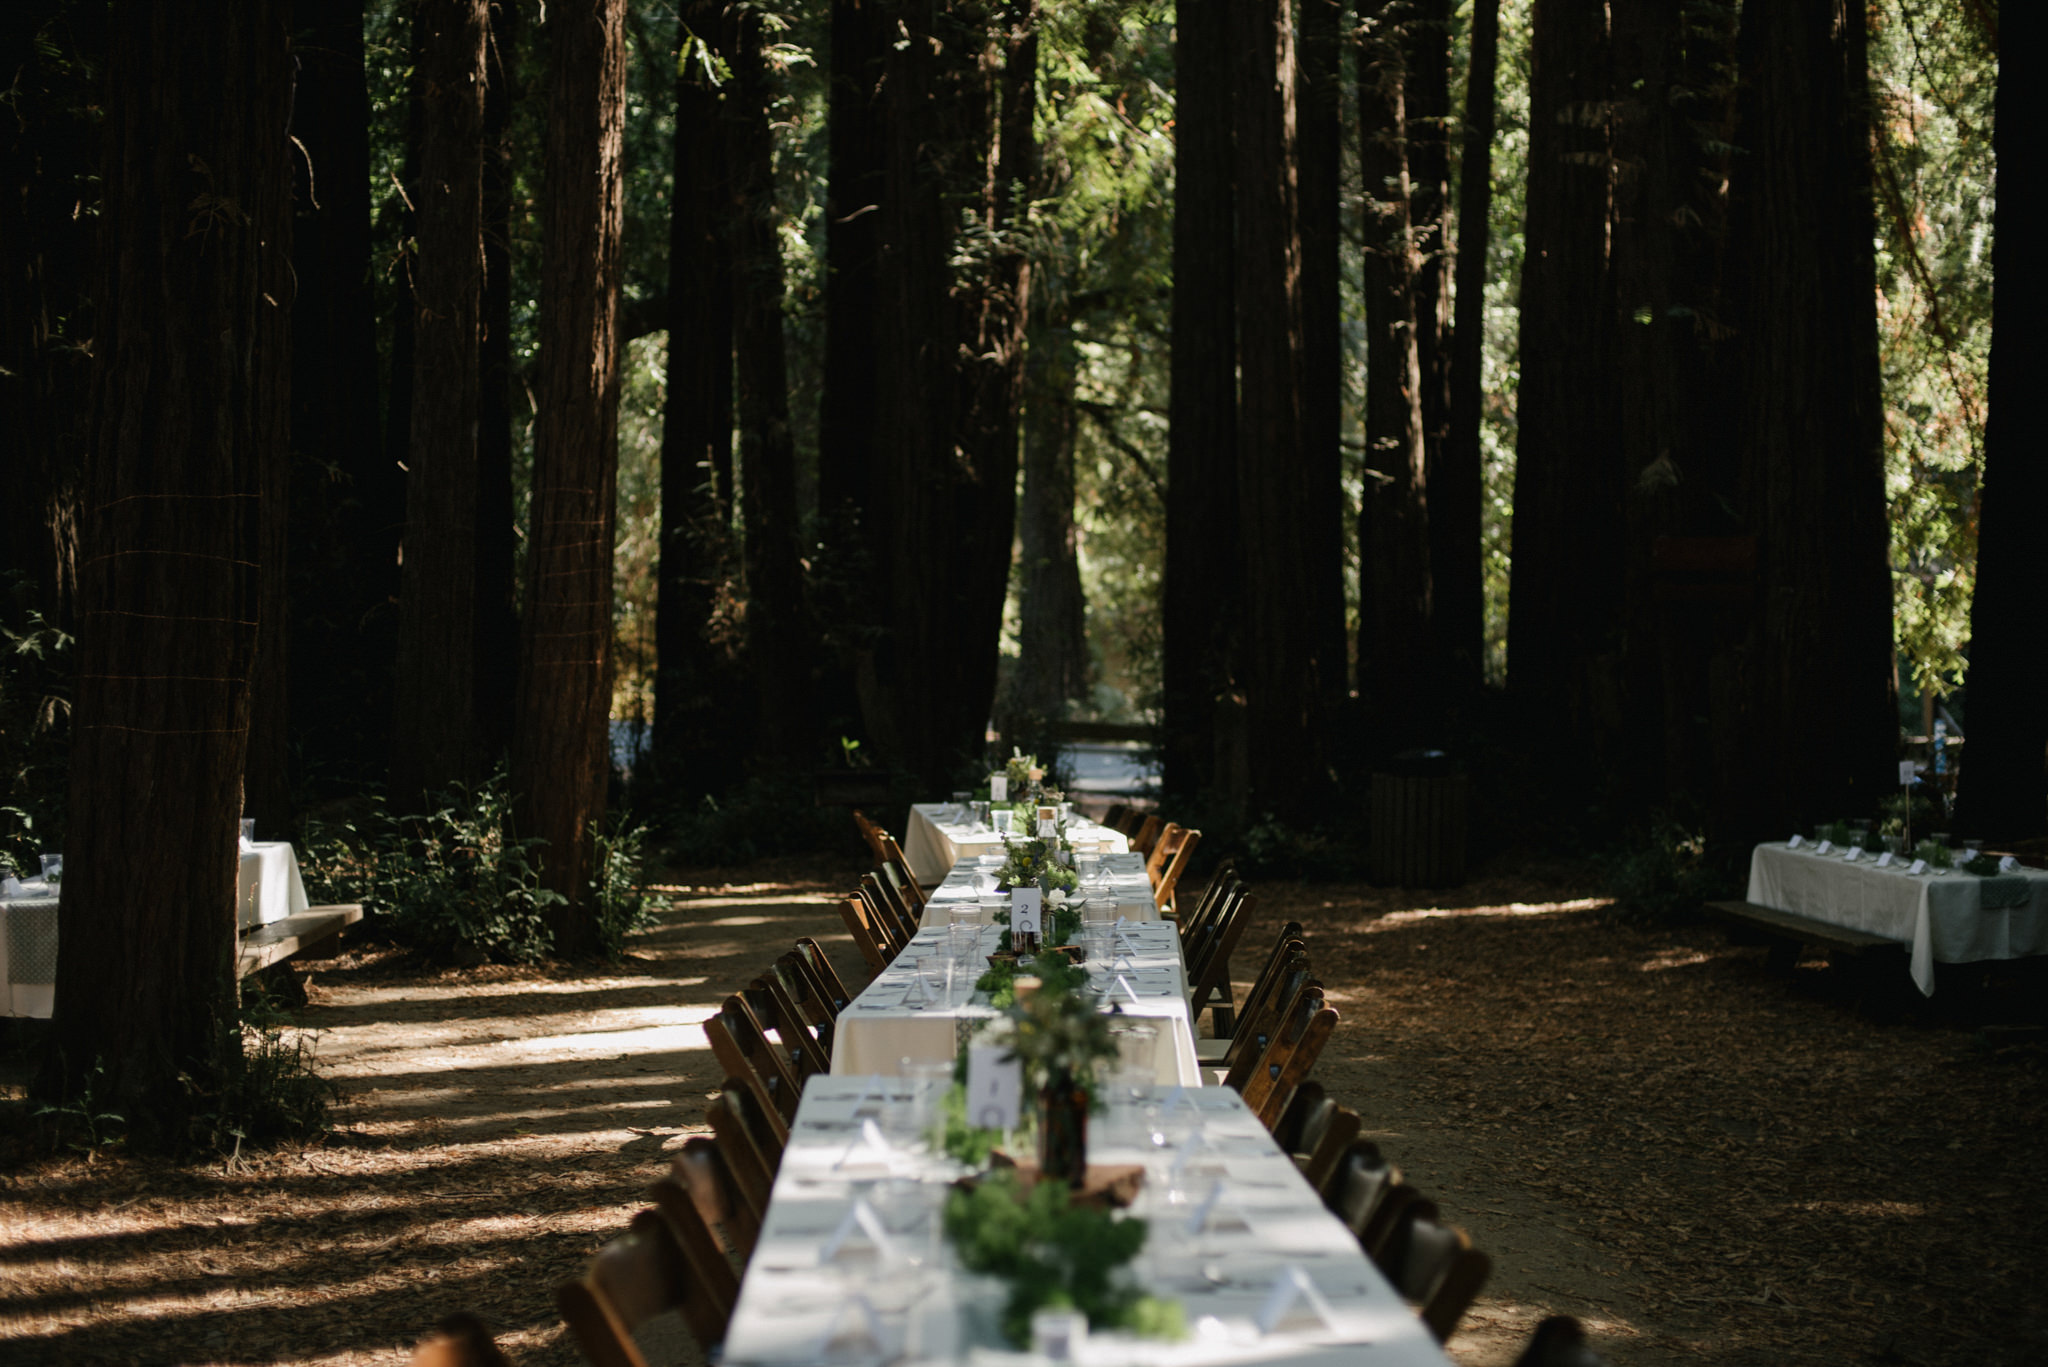 Daring Wanderer Photography - Daring Wanderer - Destination Wedding Photographer - Mill valley wedding photographer - Old Mill Park Wedding - Redwoods wedding - forest wedding ceremony - california wedding photographer - the outdoor arts club wedding